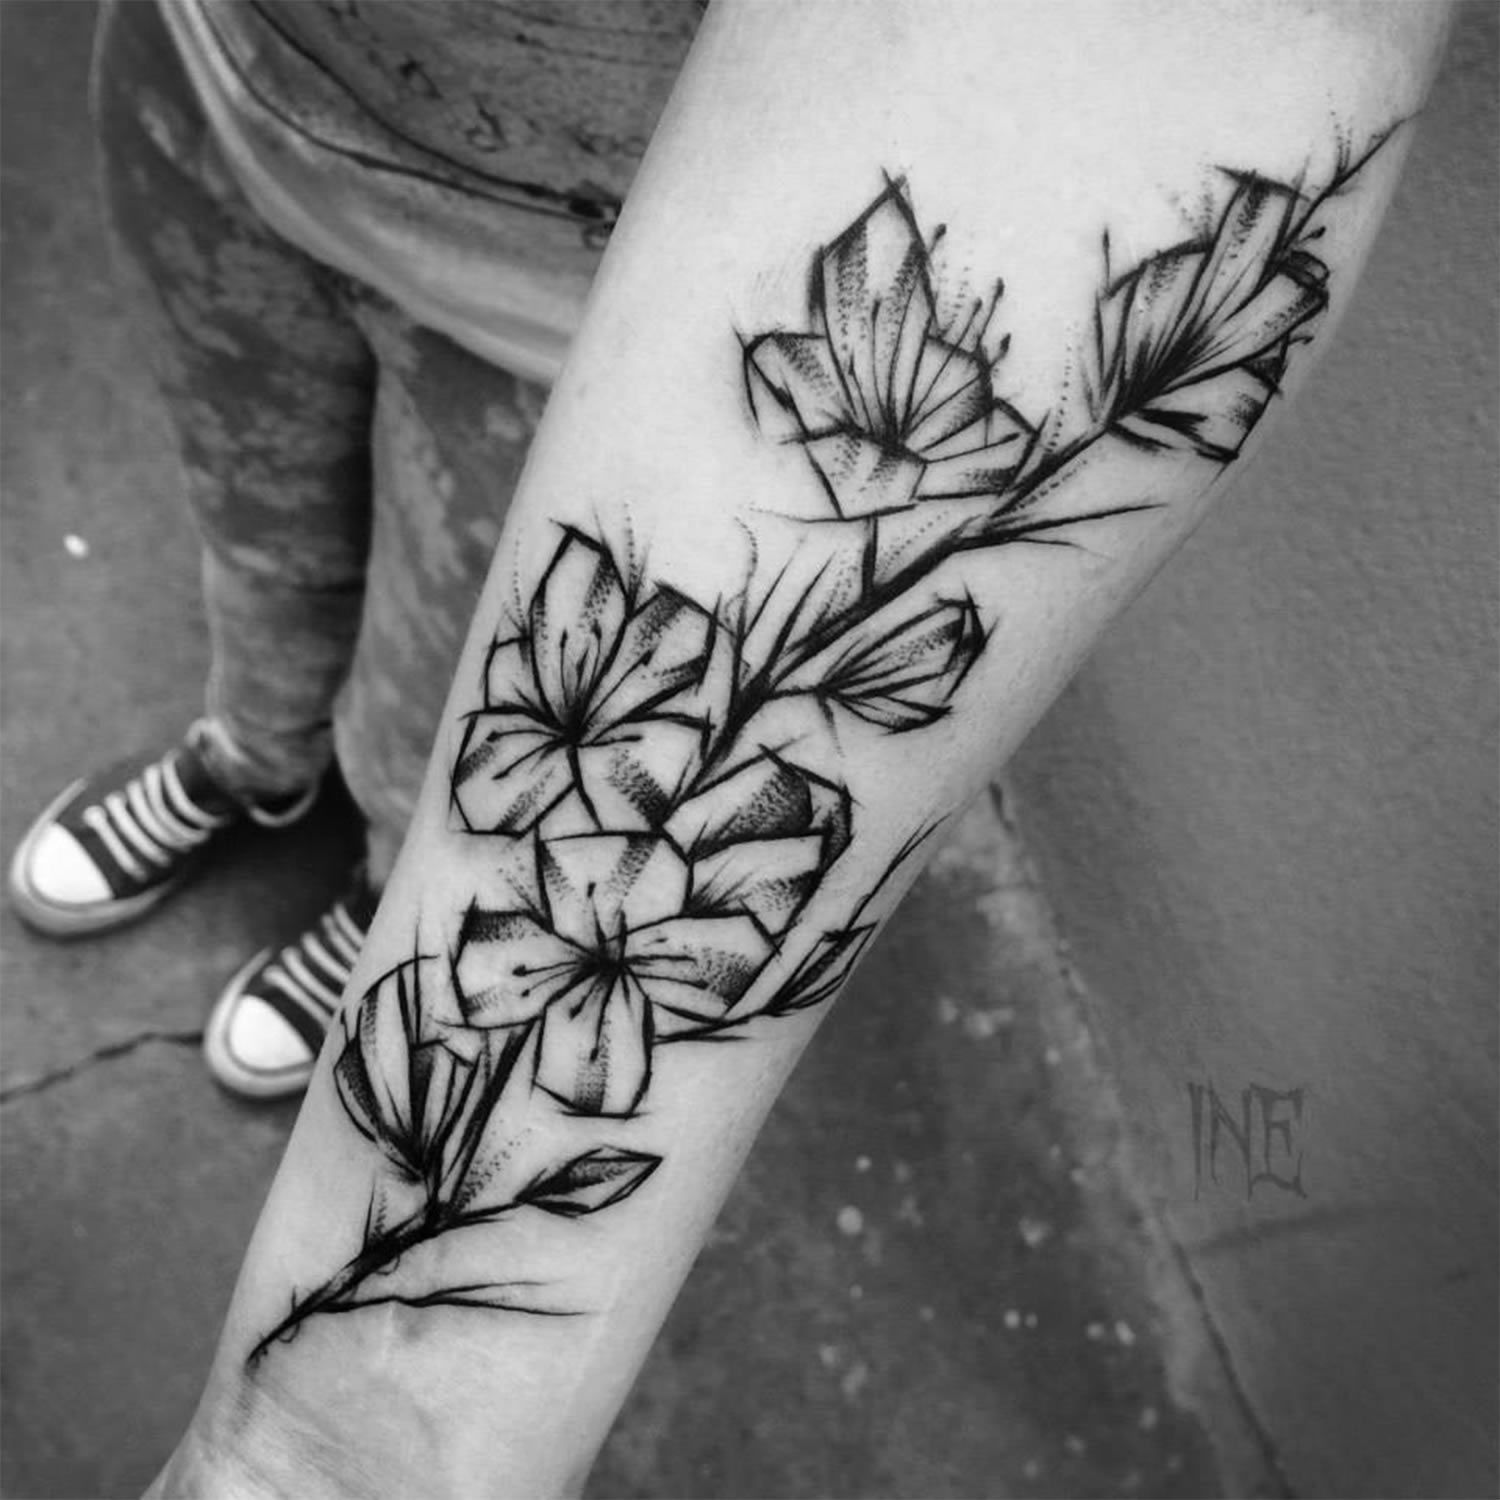 Abstract Flower Tattoo On Arm By Inne Tattoos Pinterest